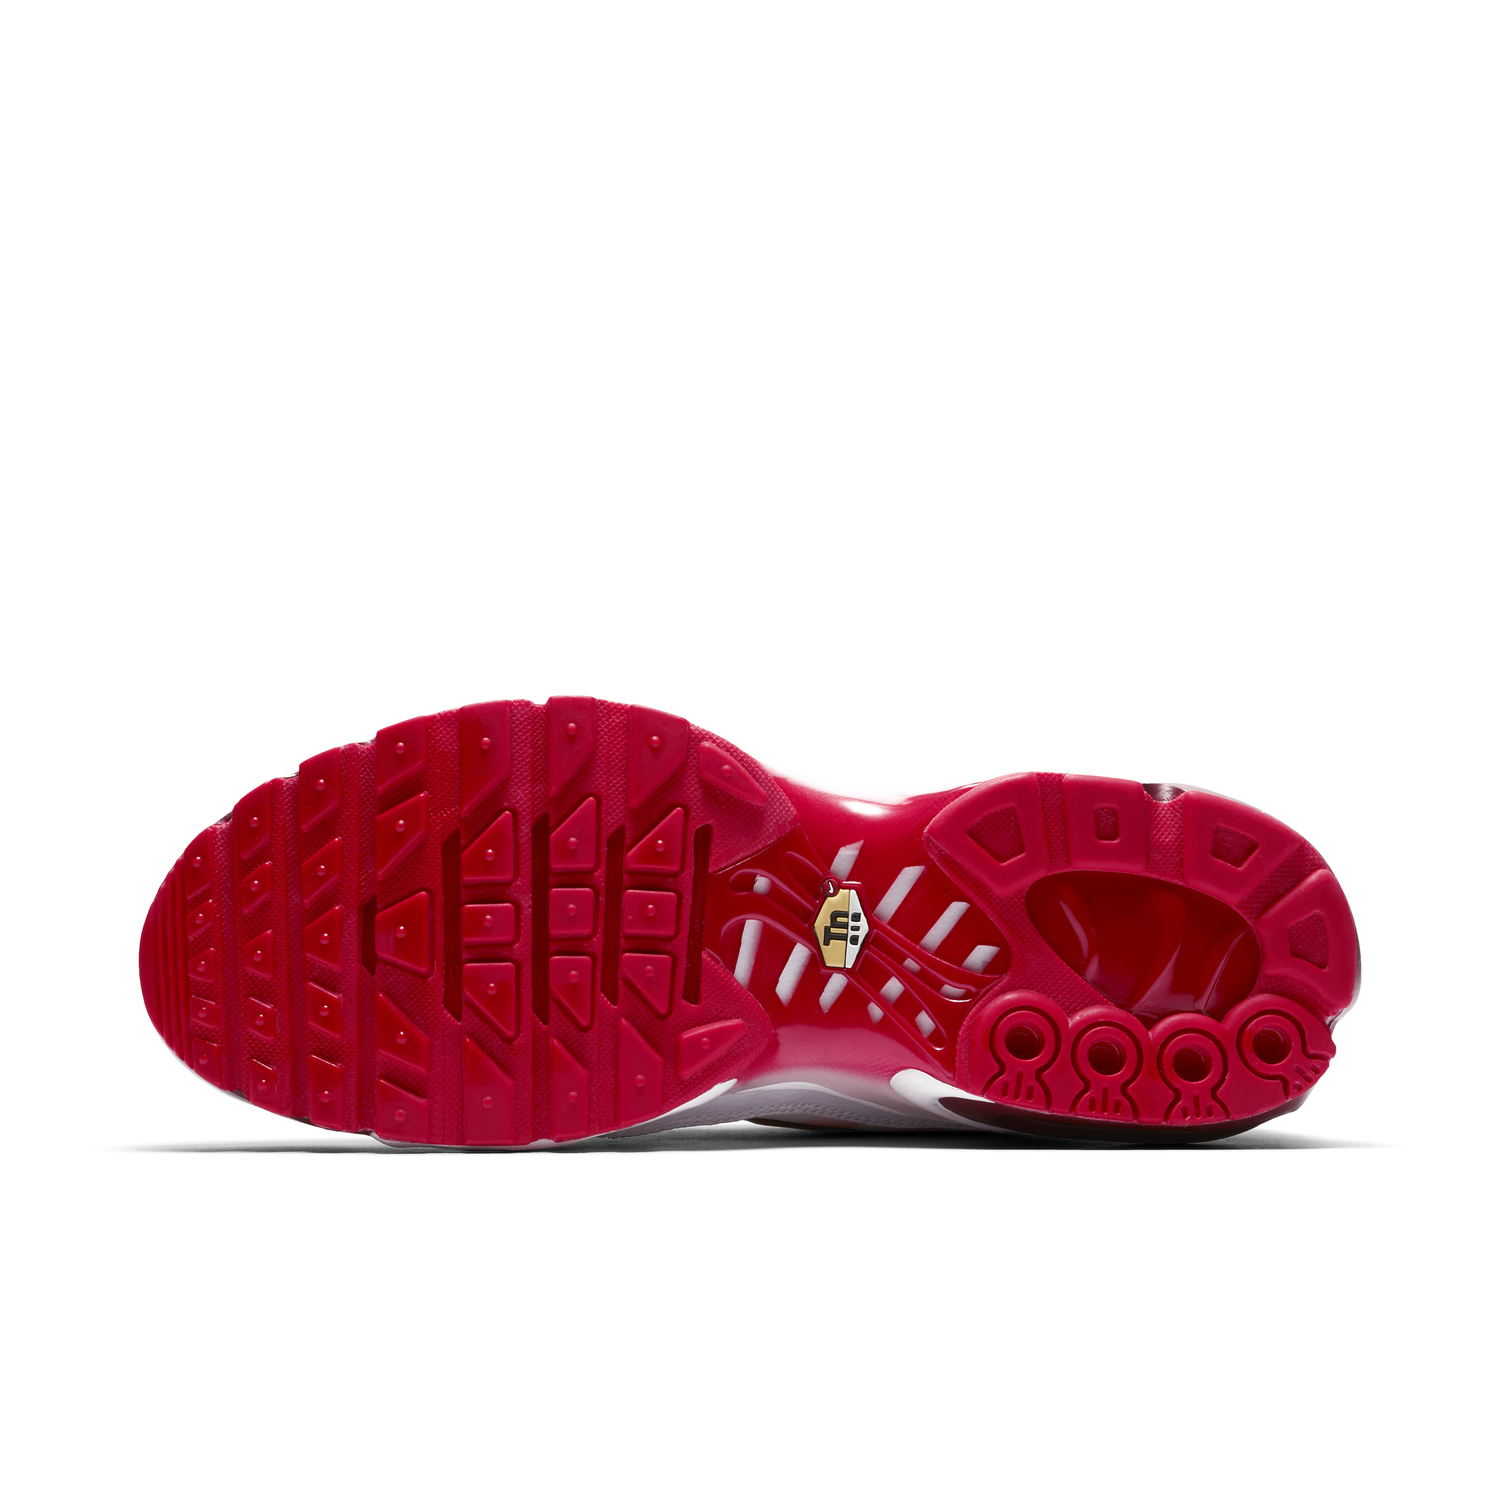 best service bec4f 56930 New Colorways of the Nike Tuned Air Unveiled for Air Max Day ...